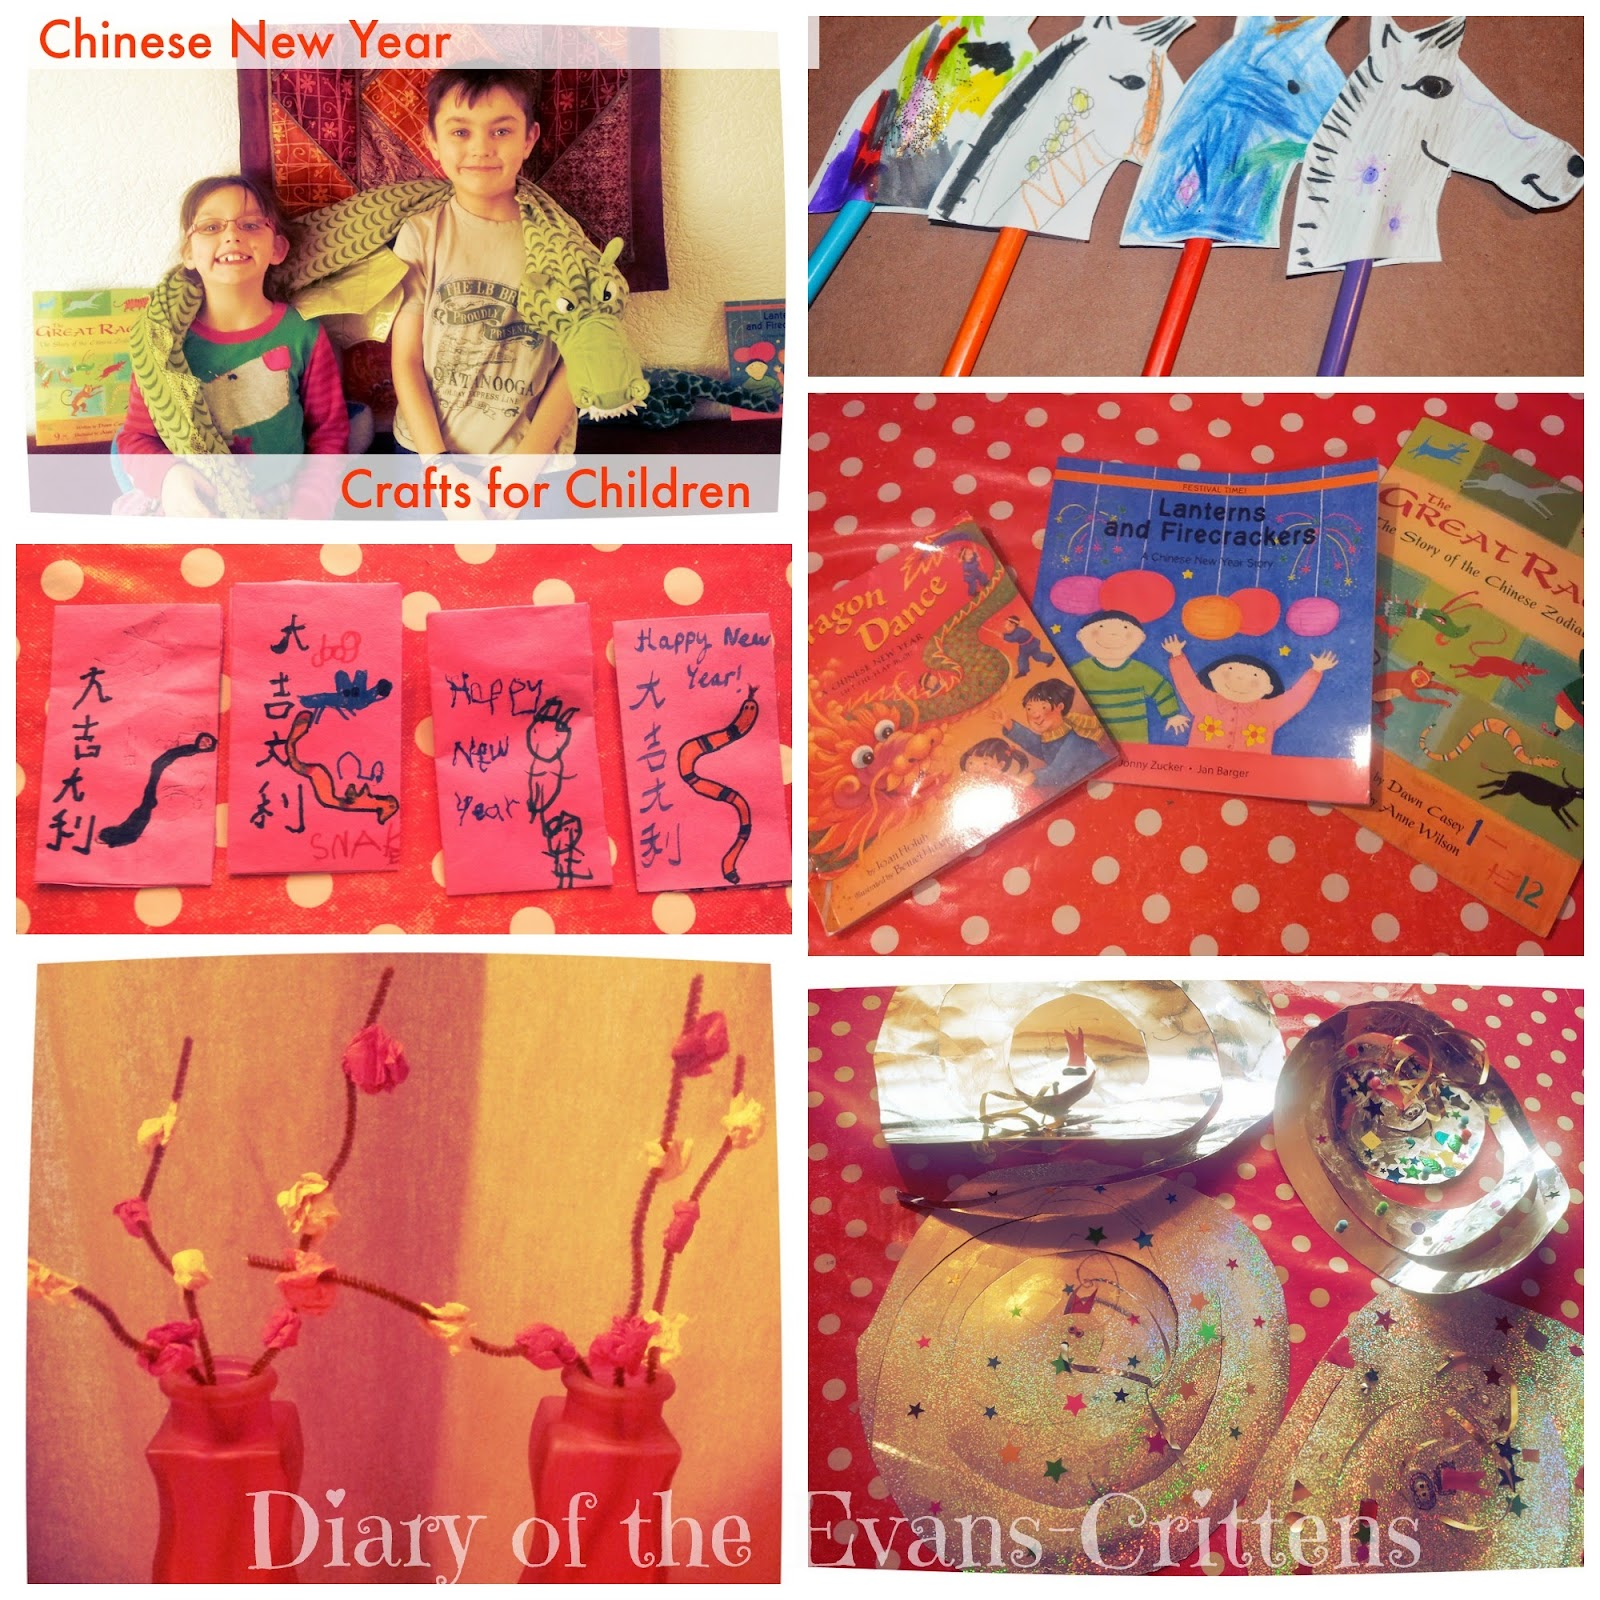 Chinese New Year Crafts for Kids Children